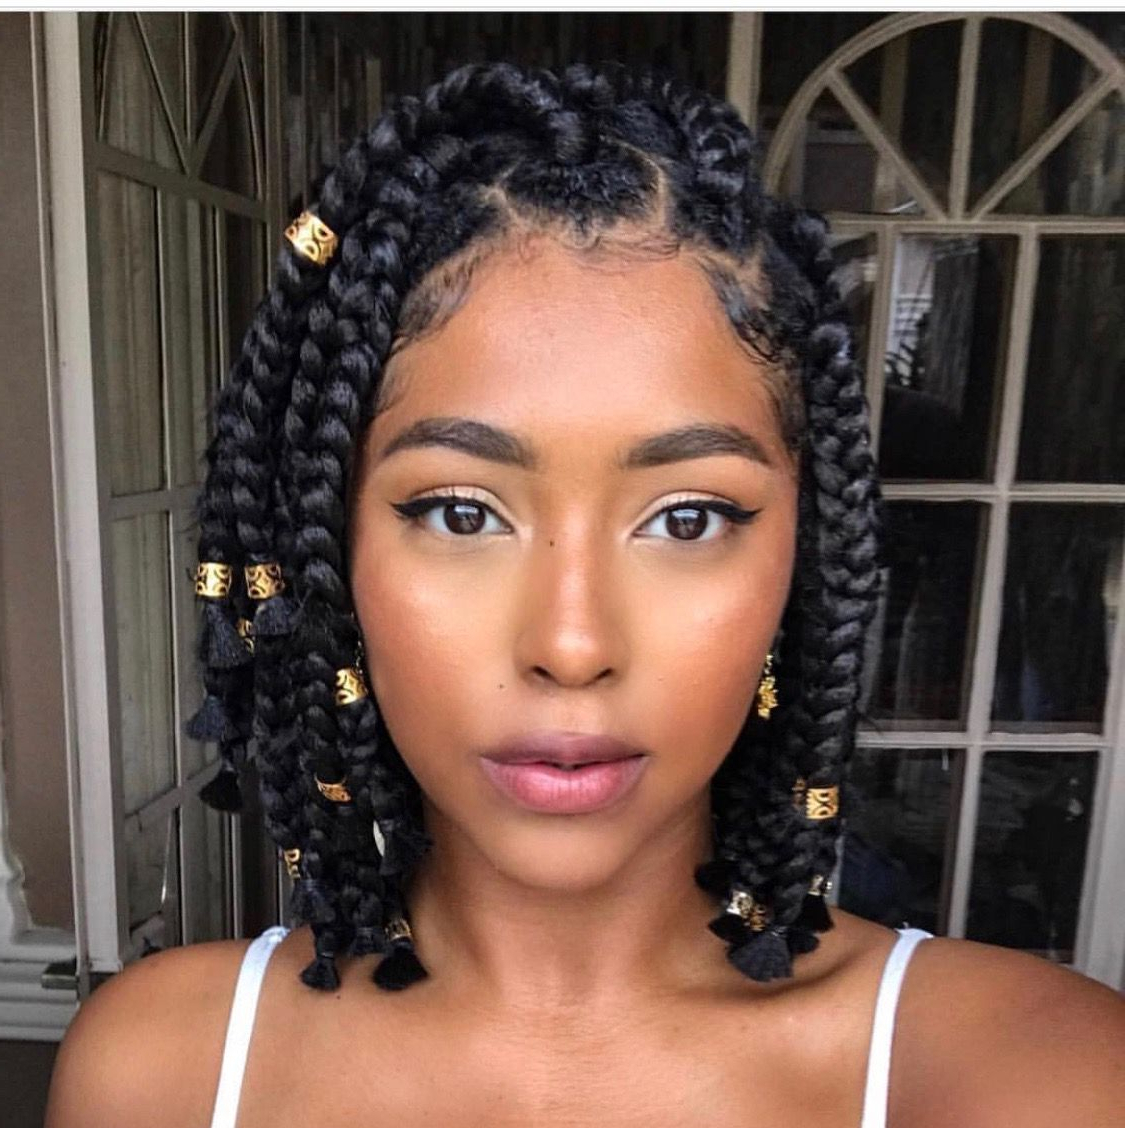 2020 Latest Short And Chic Bob Braid Hairstyles